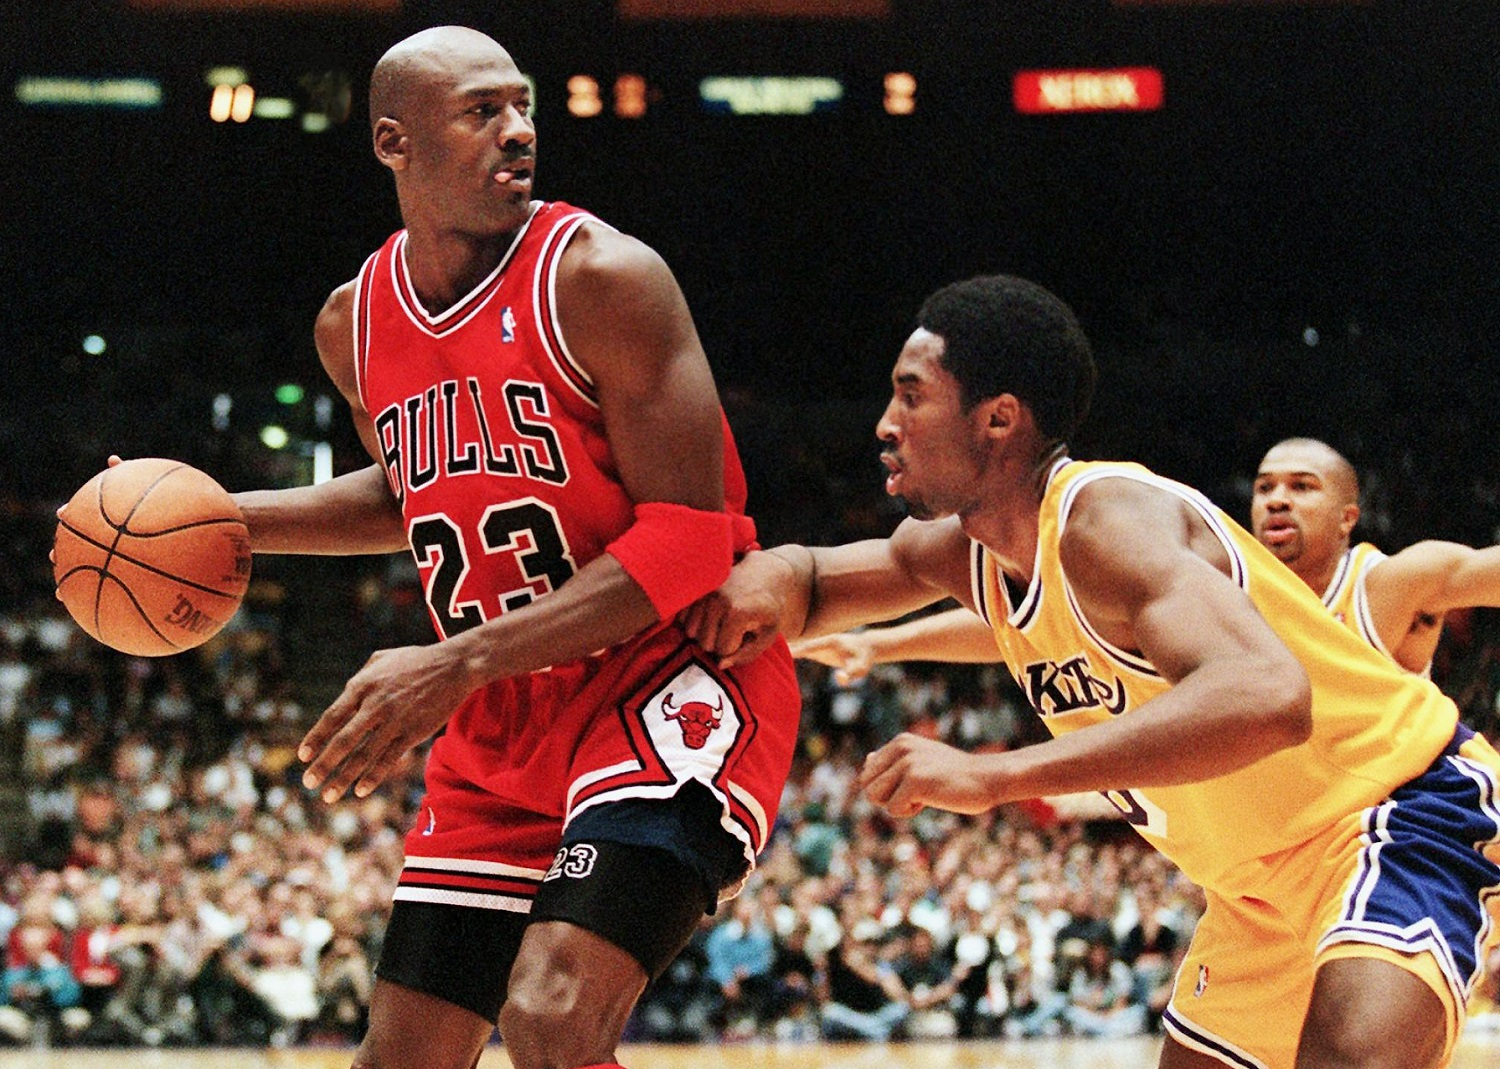 A Young Kobe Bryant Felt Insulted by Michael Jordan's Advice